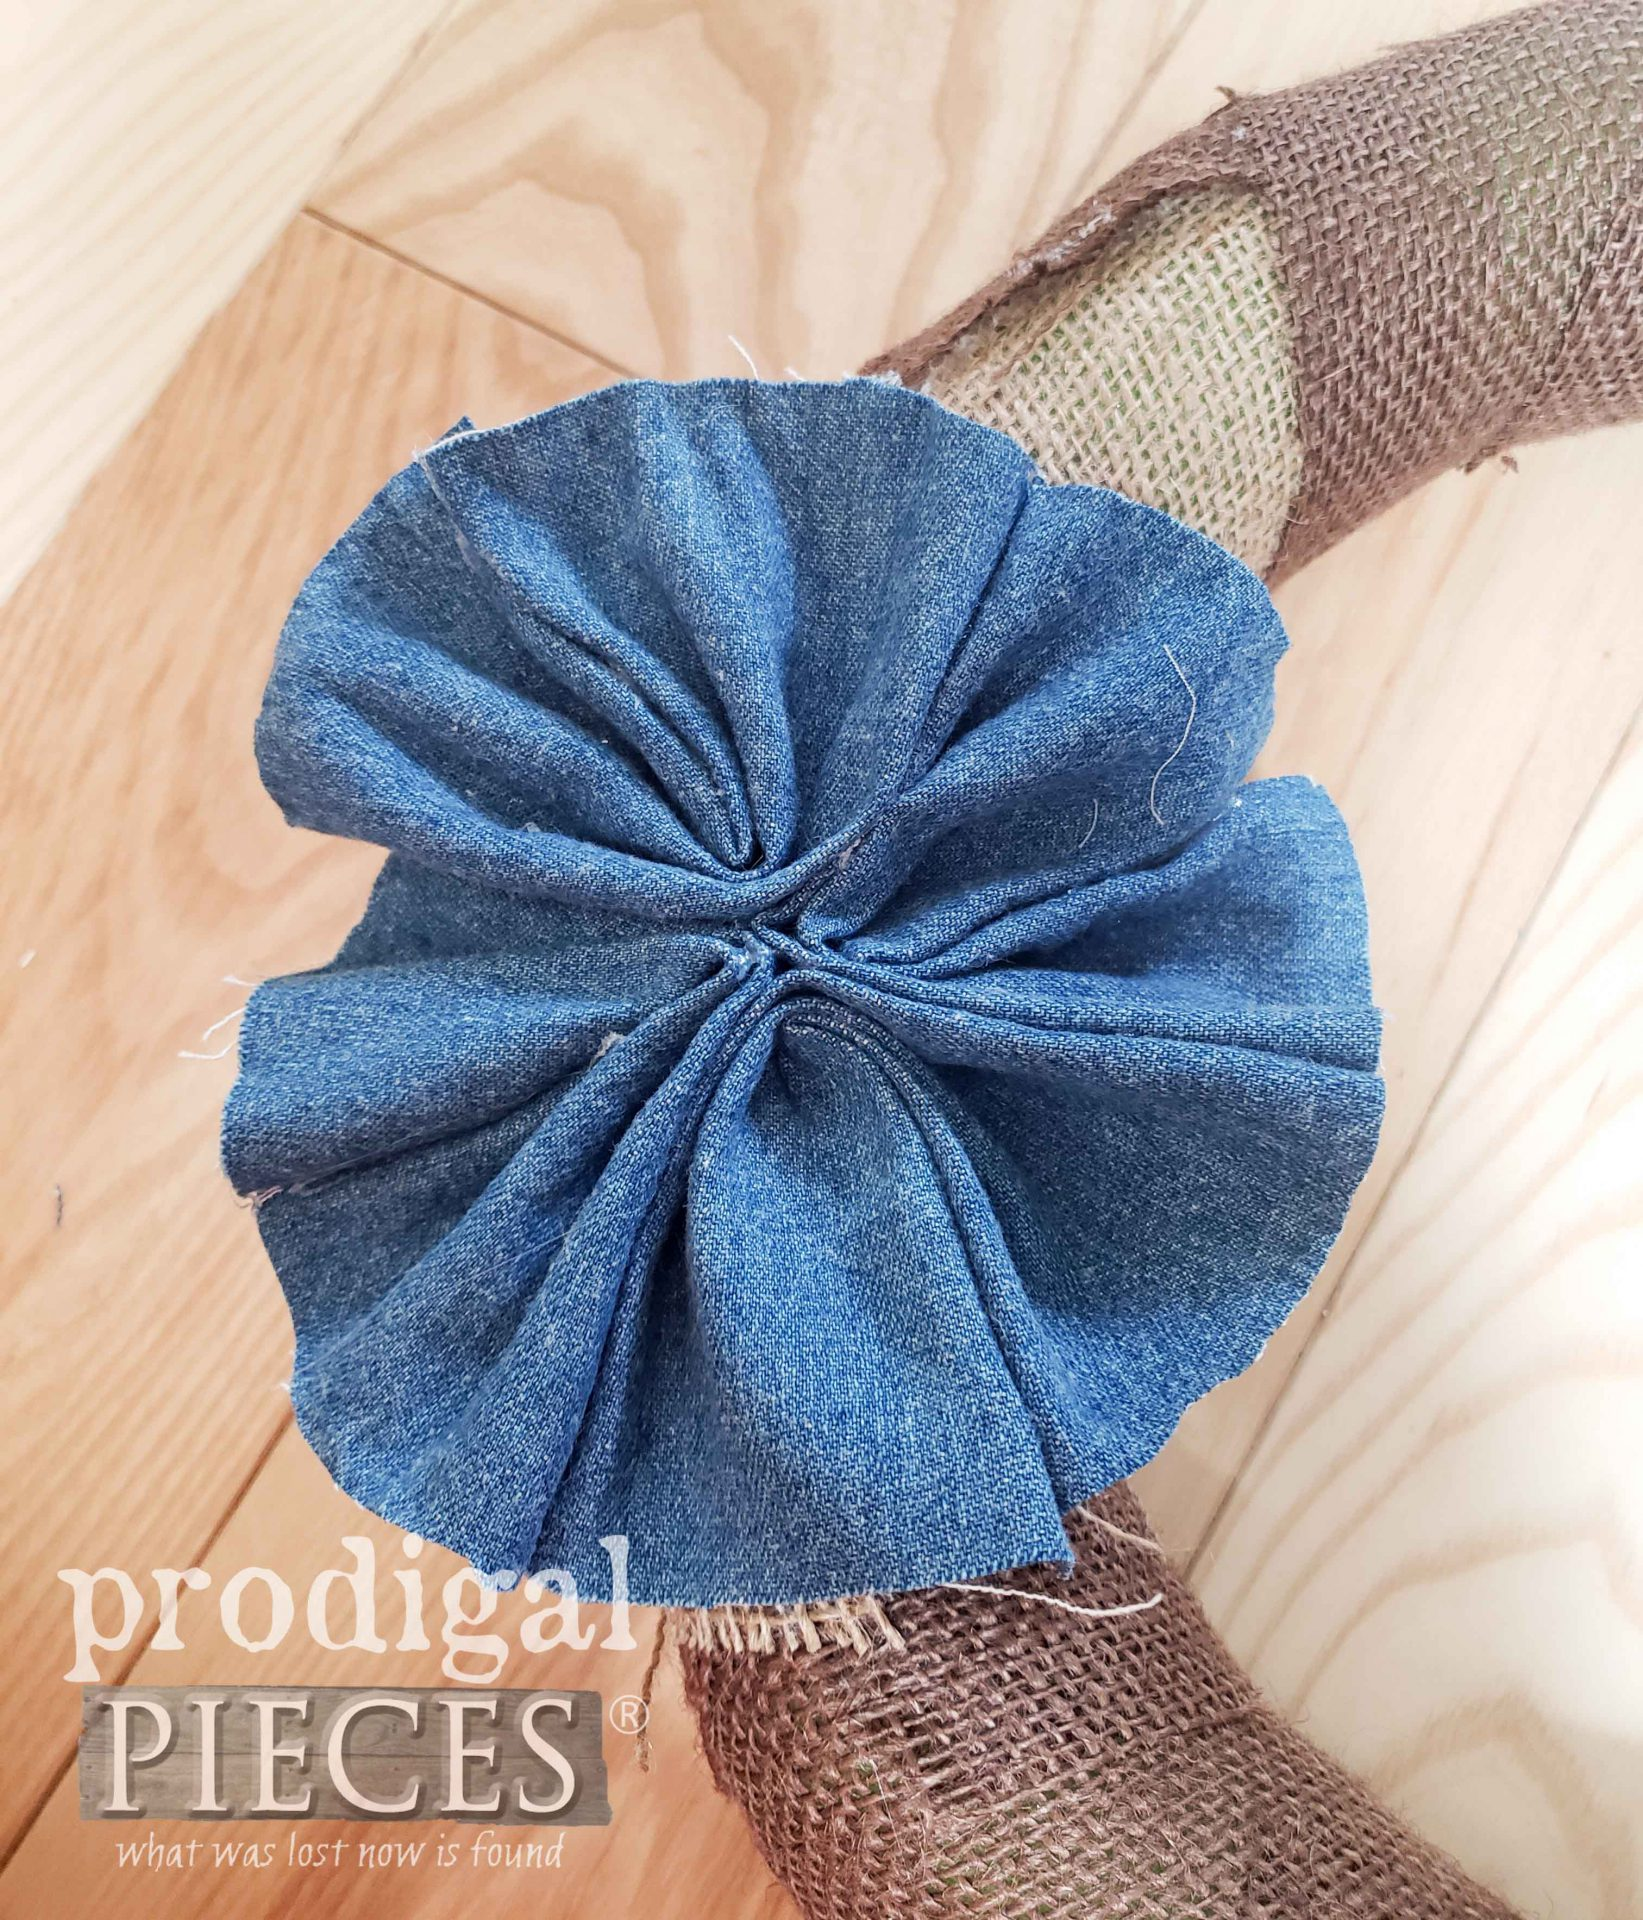 DIY Denim Floret for Independence Day Wreath by Prodigal Pieces | prodigalpieces.com